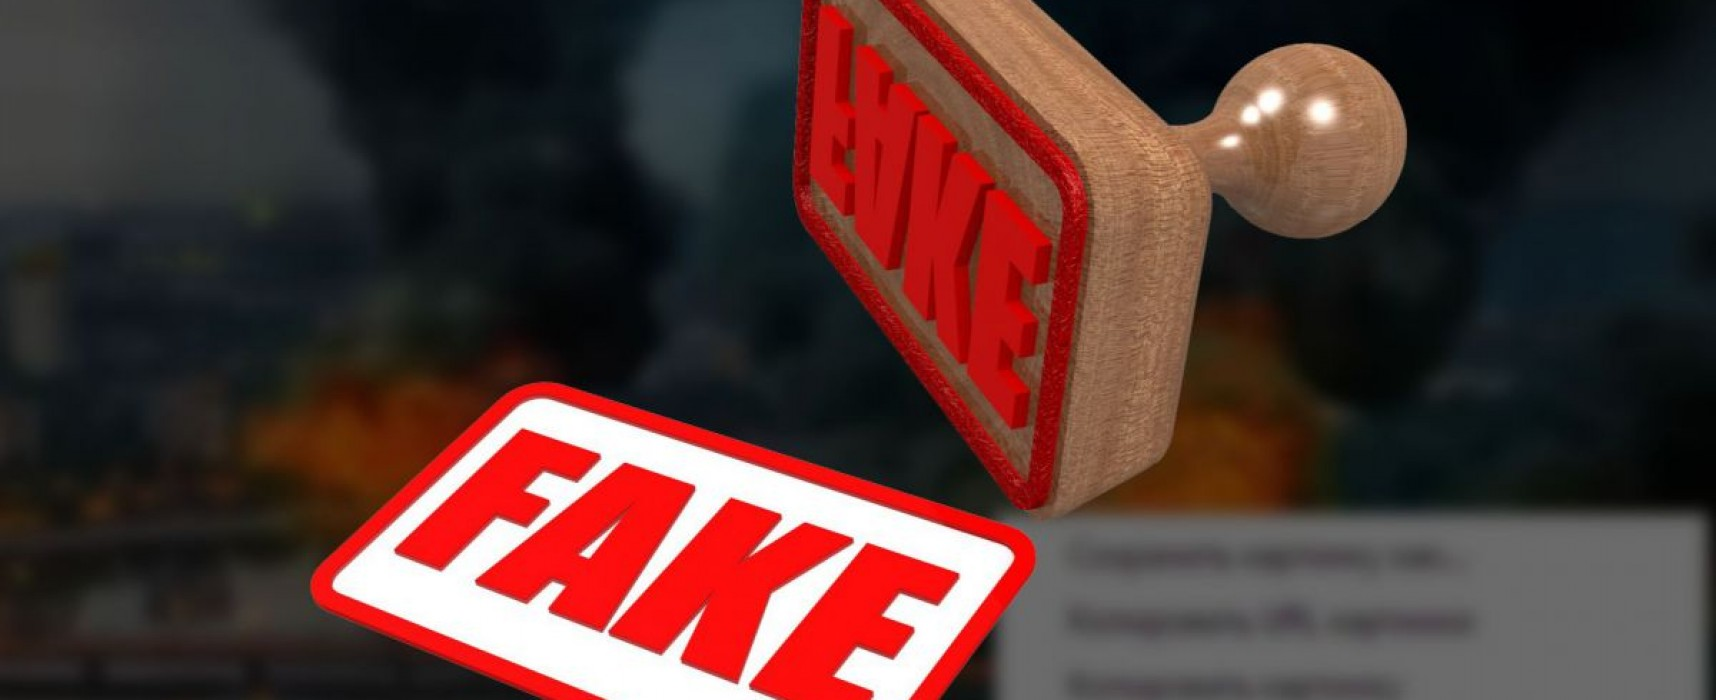 How to Identify a Fake